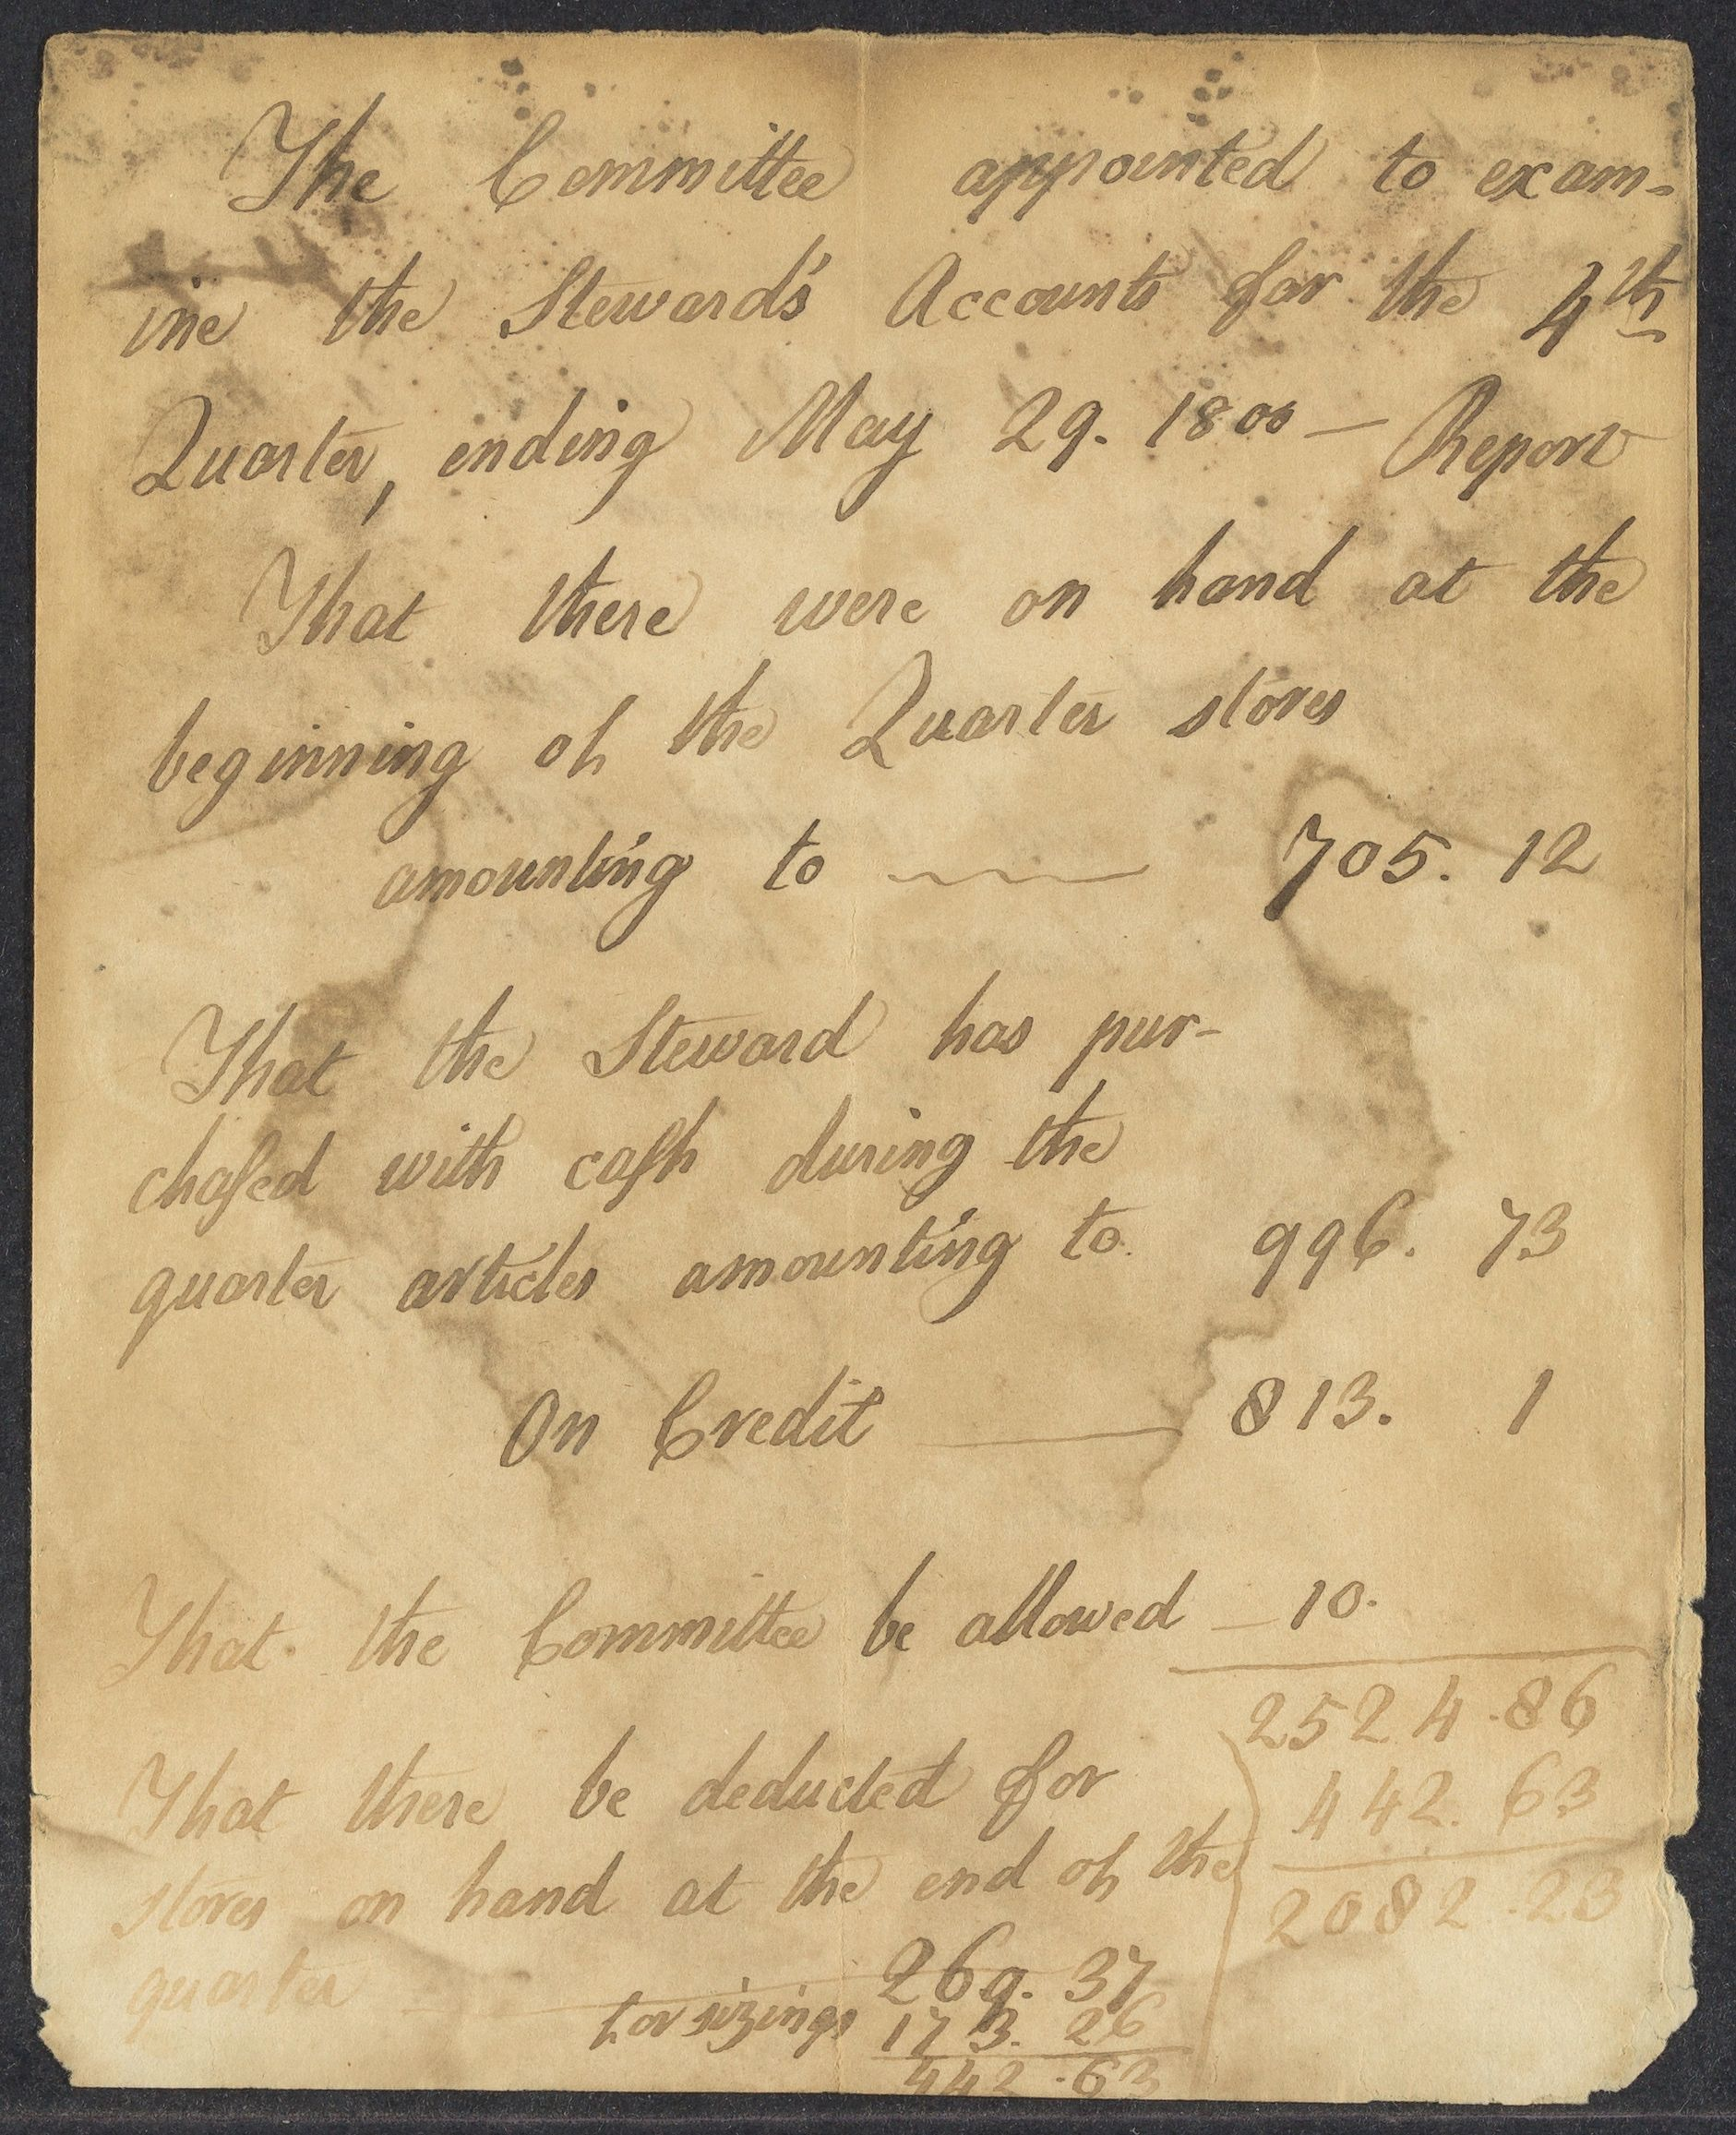 Reports of the Committee of commons, 1800